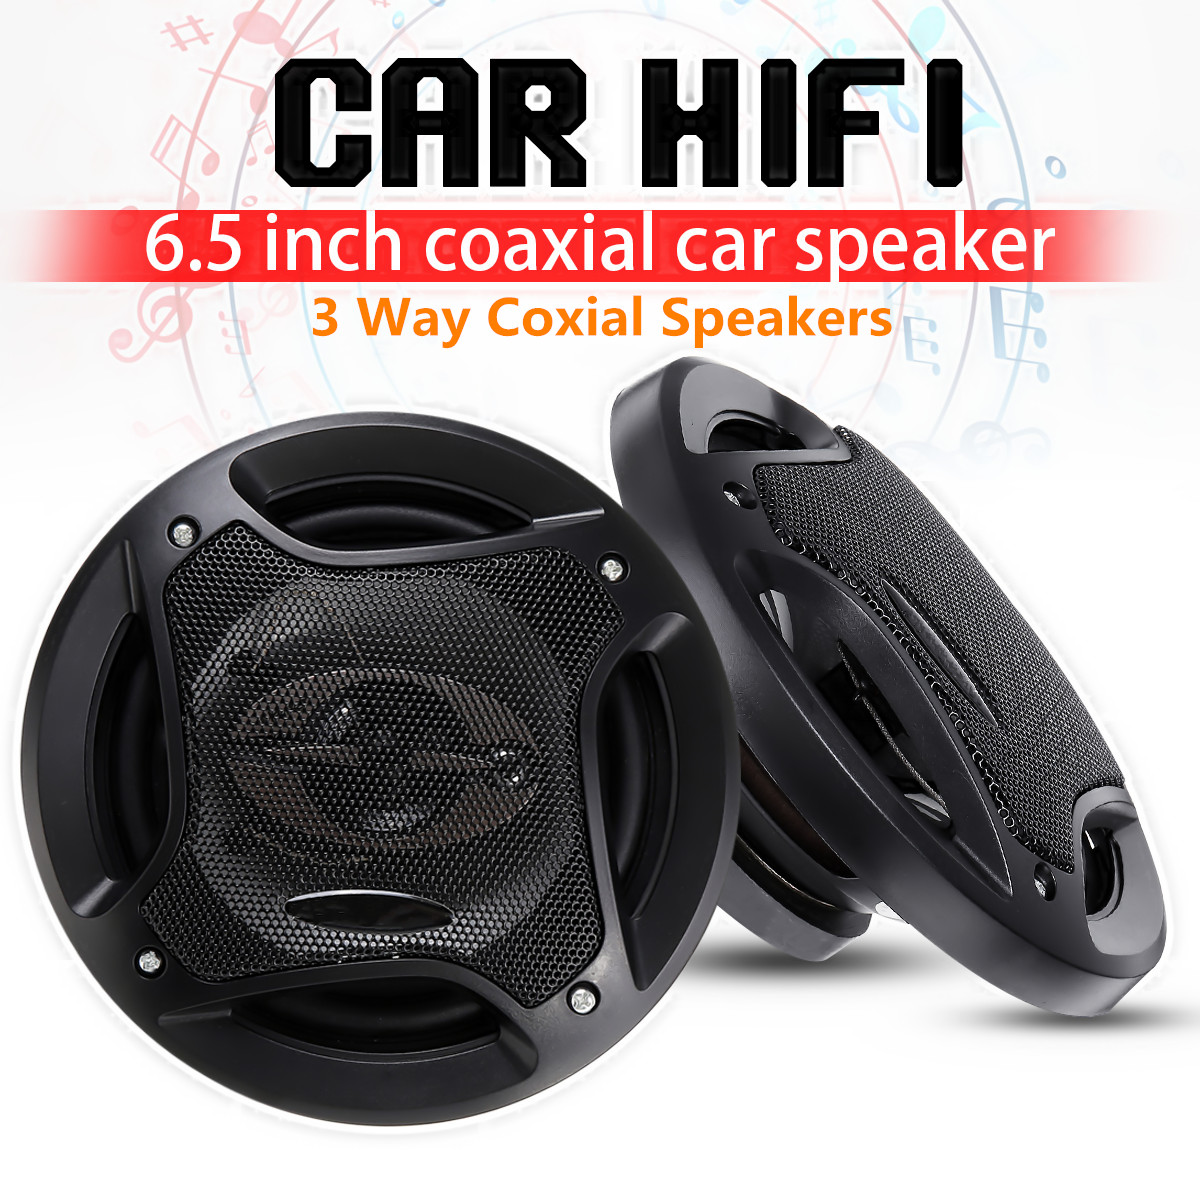 2pcs 6.5 inch 400W 3 Way Auto Car Loudspeaker Coaxial Speakers Horn Audio Music Stereo Hifi Vehicle Car Speaker and Subwoofer red mock neck lettuce edge hem mini dress